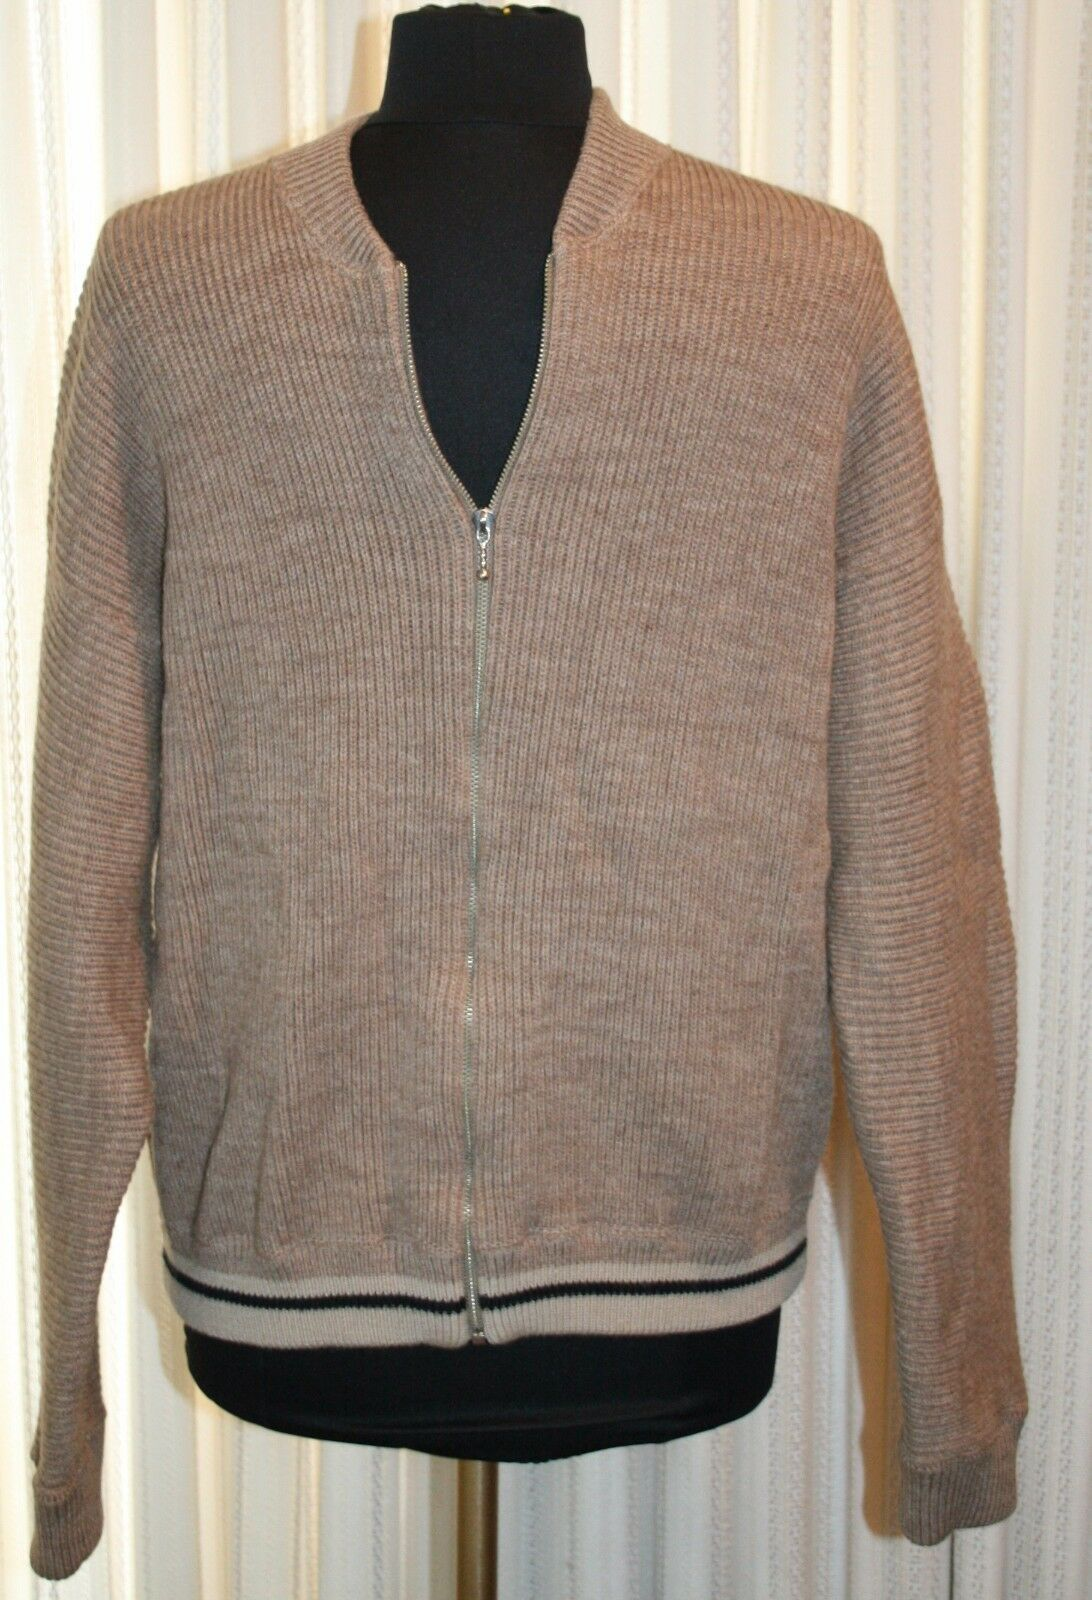 Primary image for J Crew Beige Wool Heavy Knit Sweater Sz M  Cardigan Zip Front Light Brown Mens